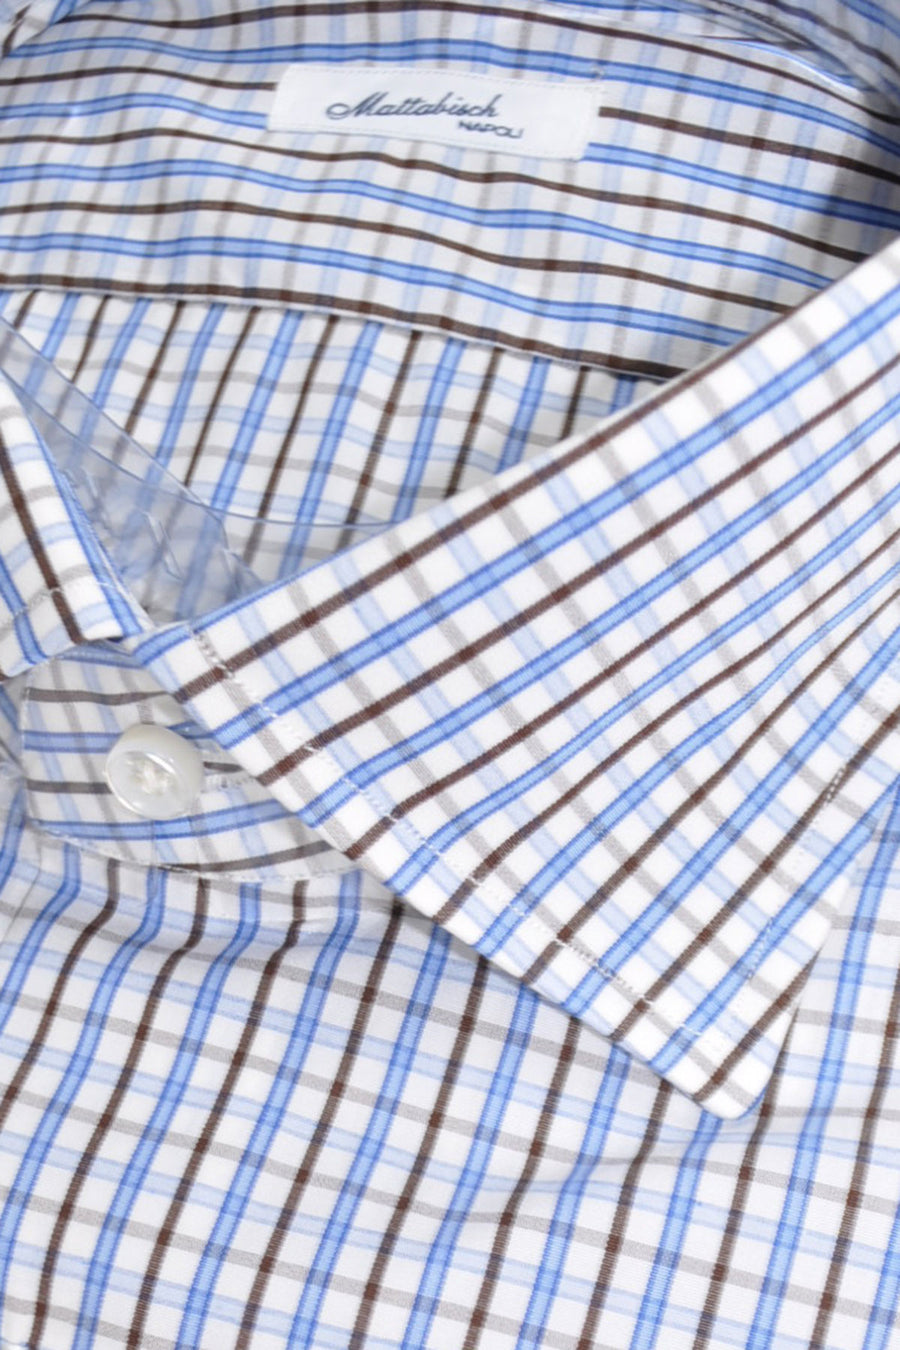 Mattabisch Napoli Dress Shirt White Blue Brown Check